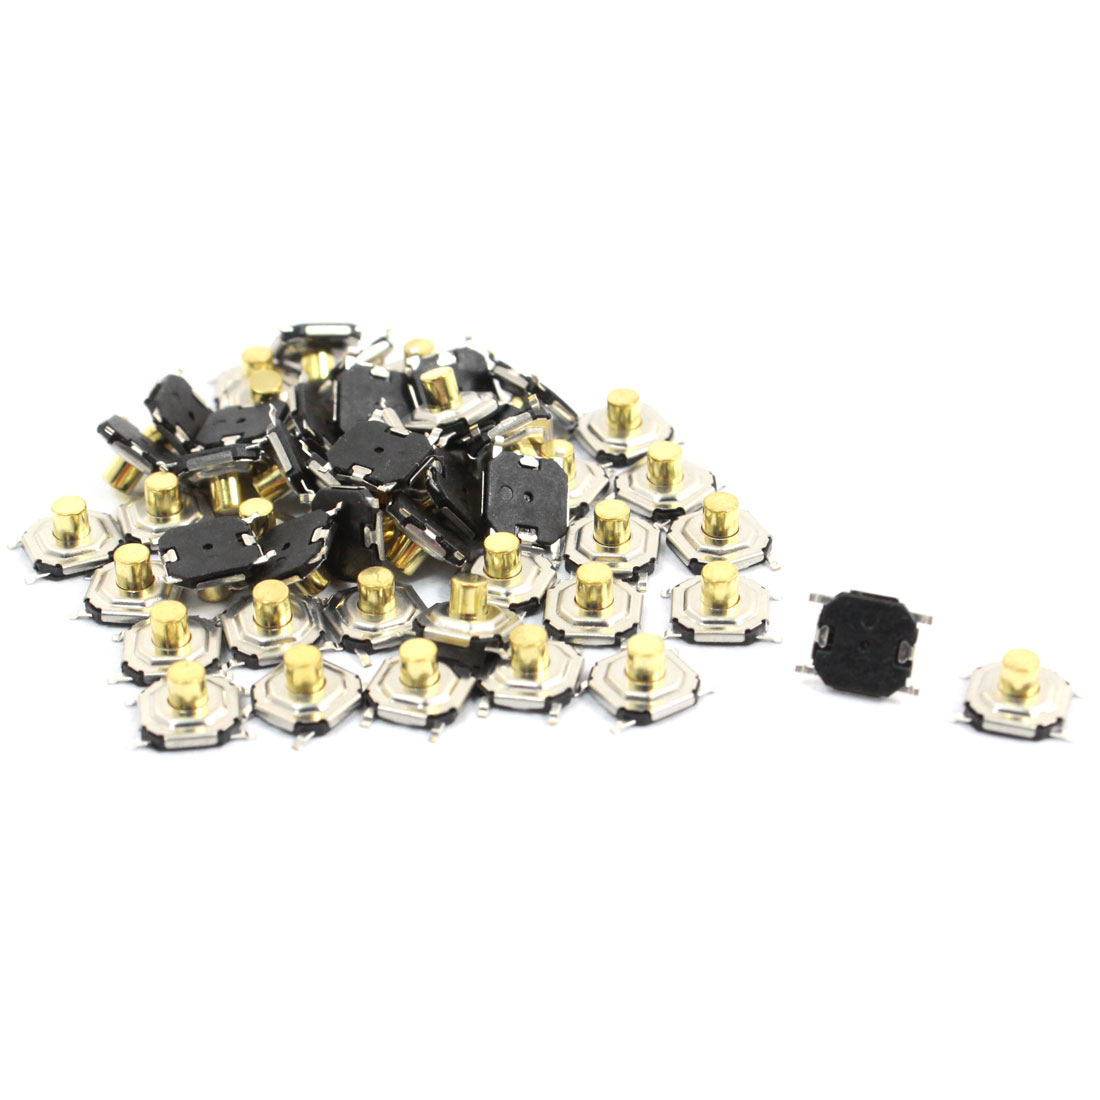 50pcs SMT Momentary Action 4 Pins Terminals Tactile Switches 5 x 5 x 3mm